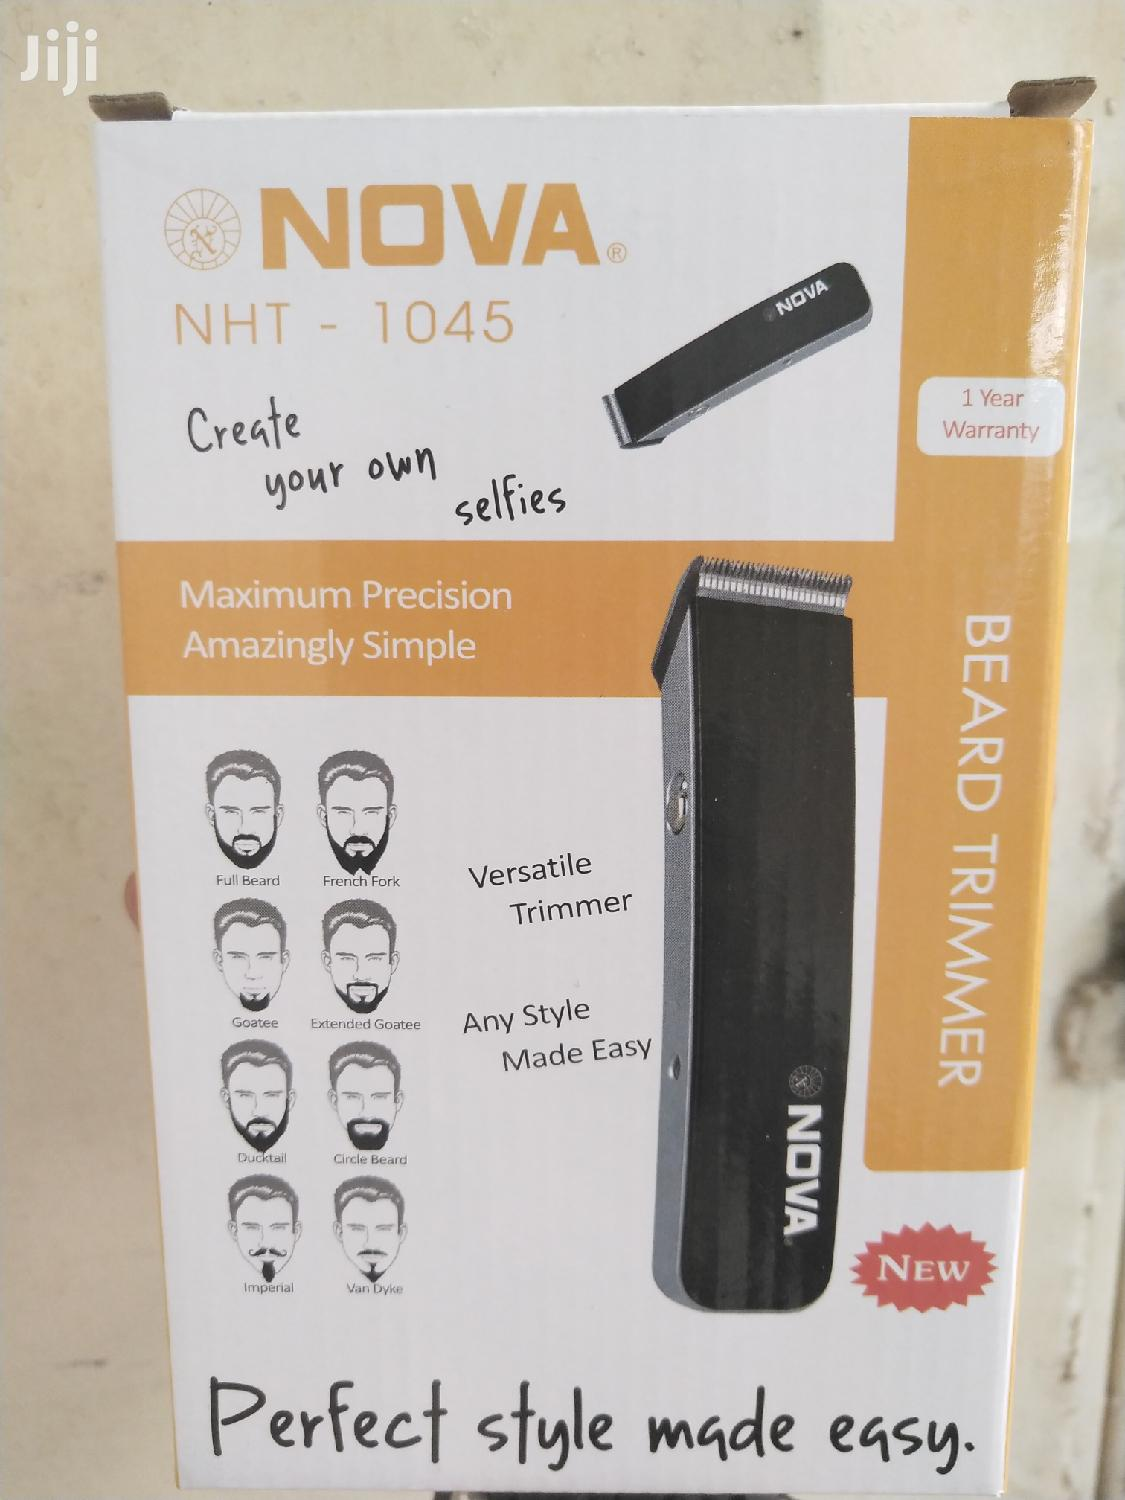 Nova Rechargable Professional Hair Trimmer NHT1046 | Tools & Accessories for sale in Ilala, Dar es Salaam, Tanzania